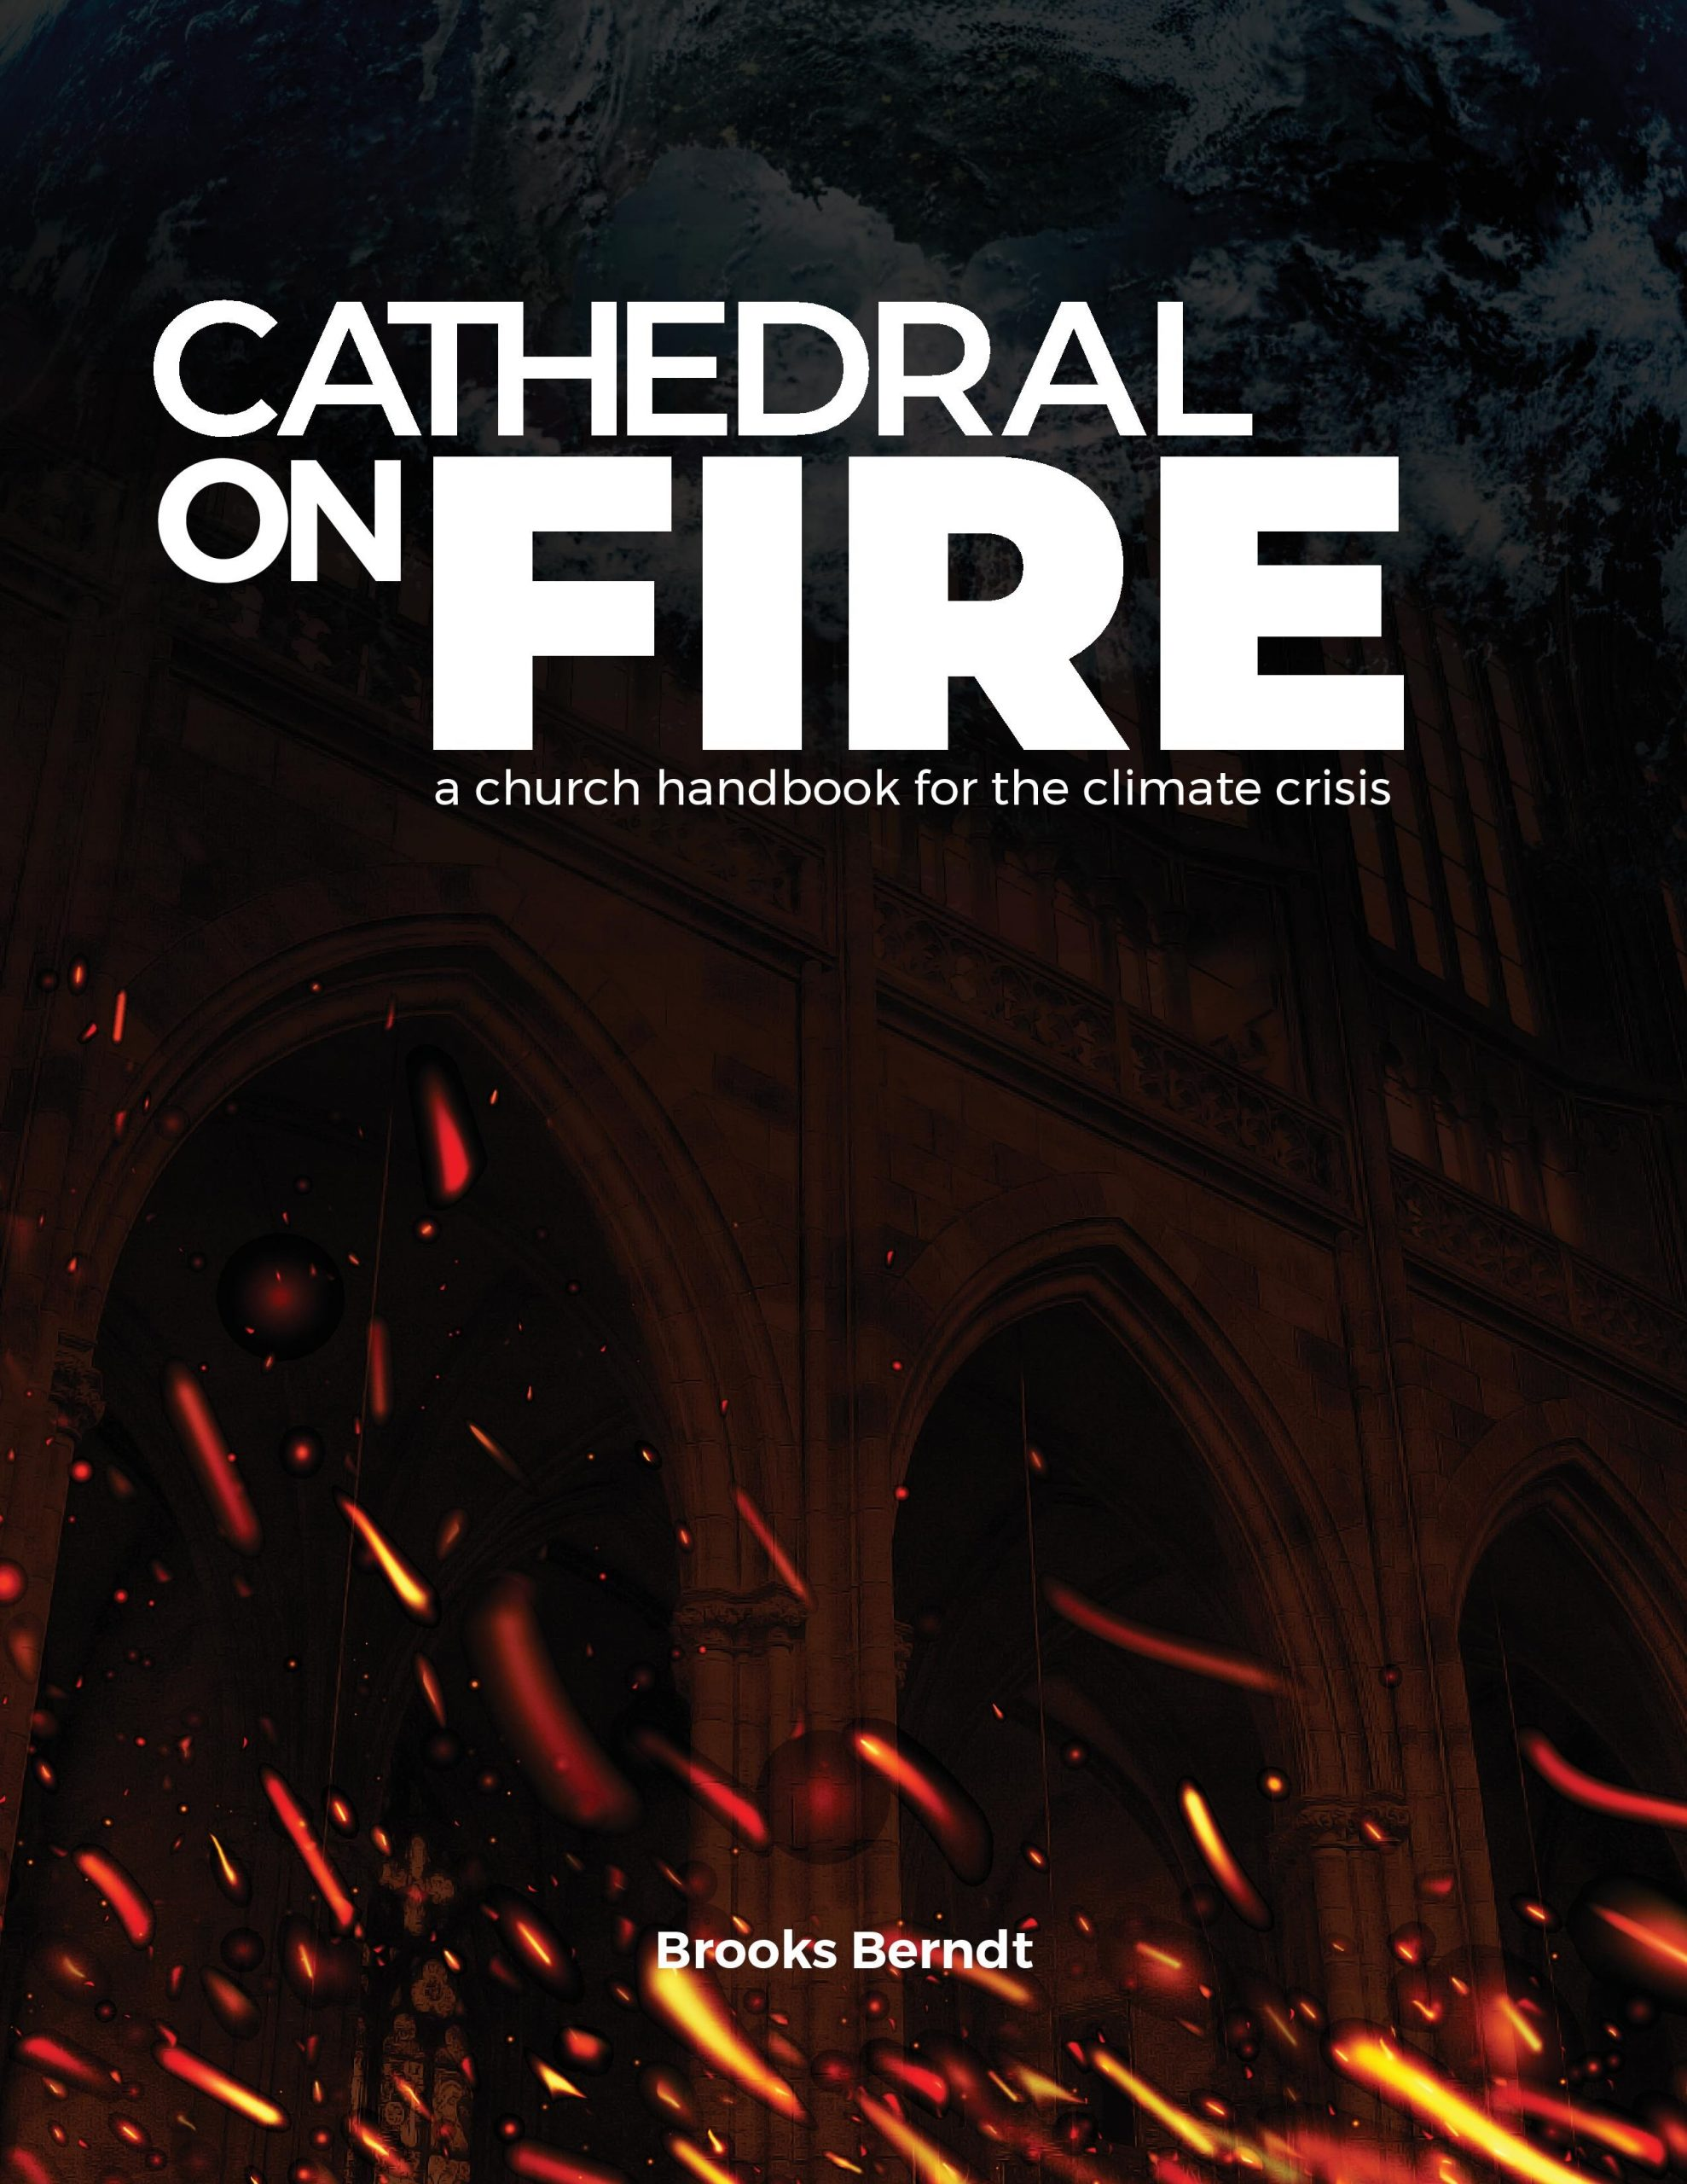 CathedralOnFire.jpg